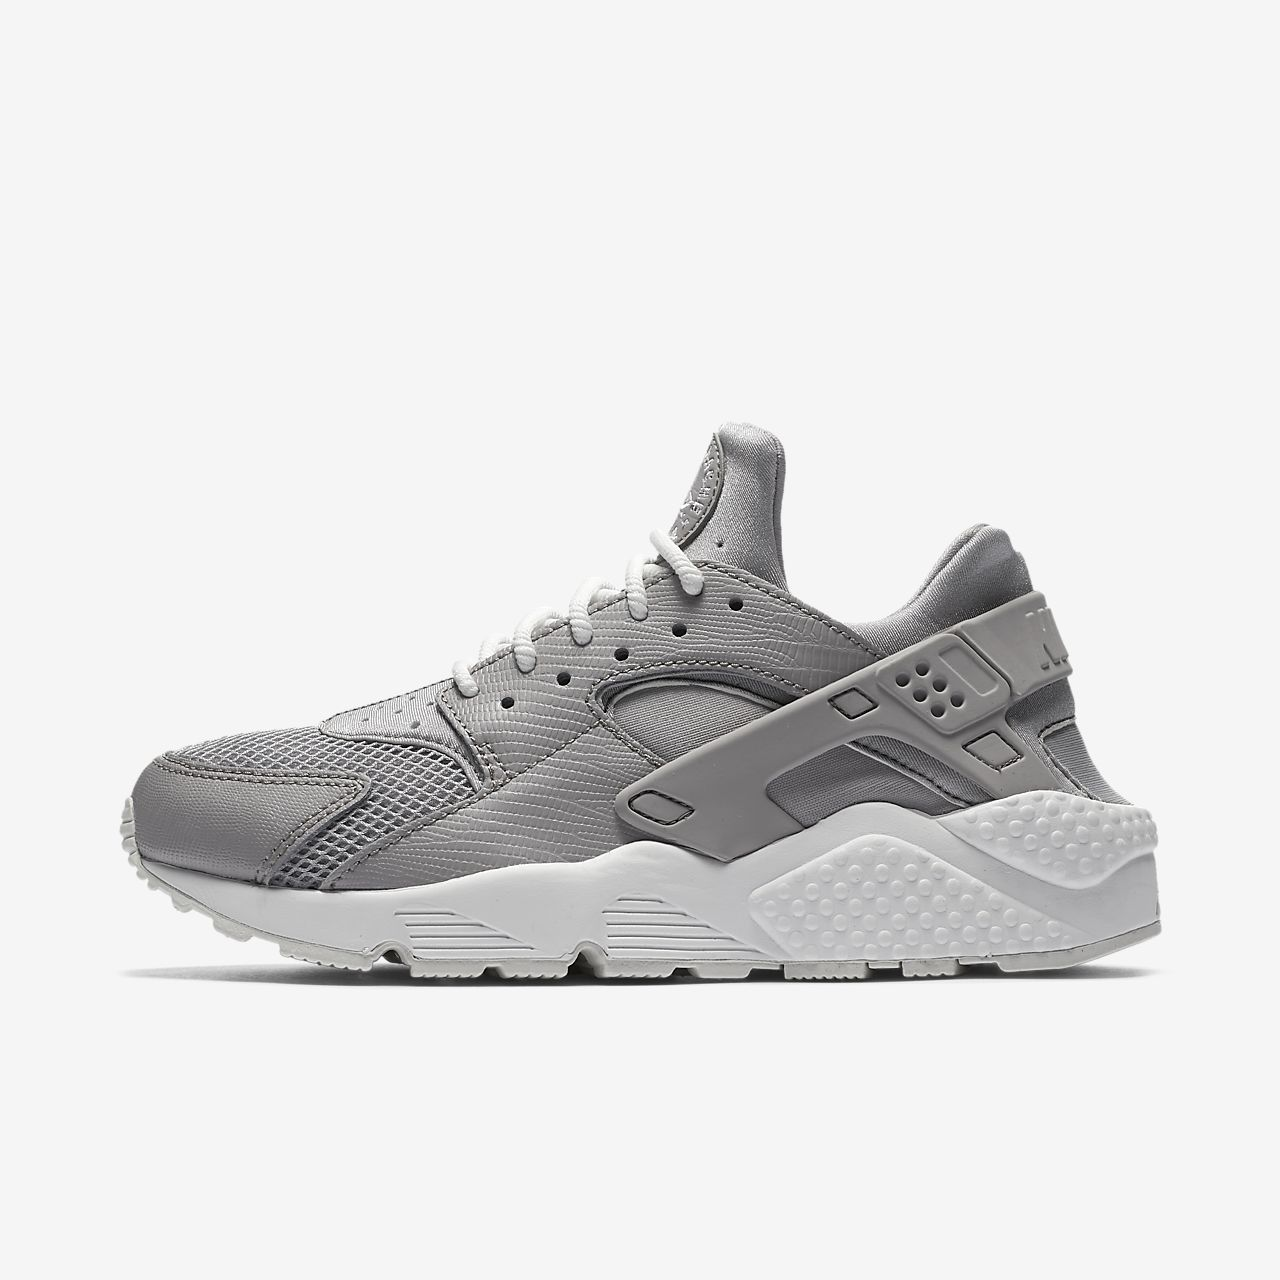 nike air huarache ultra mens 10.5 nz